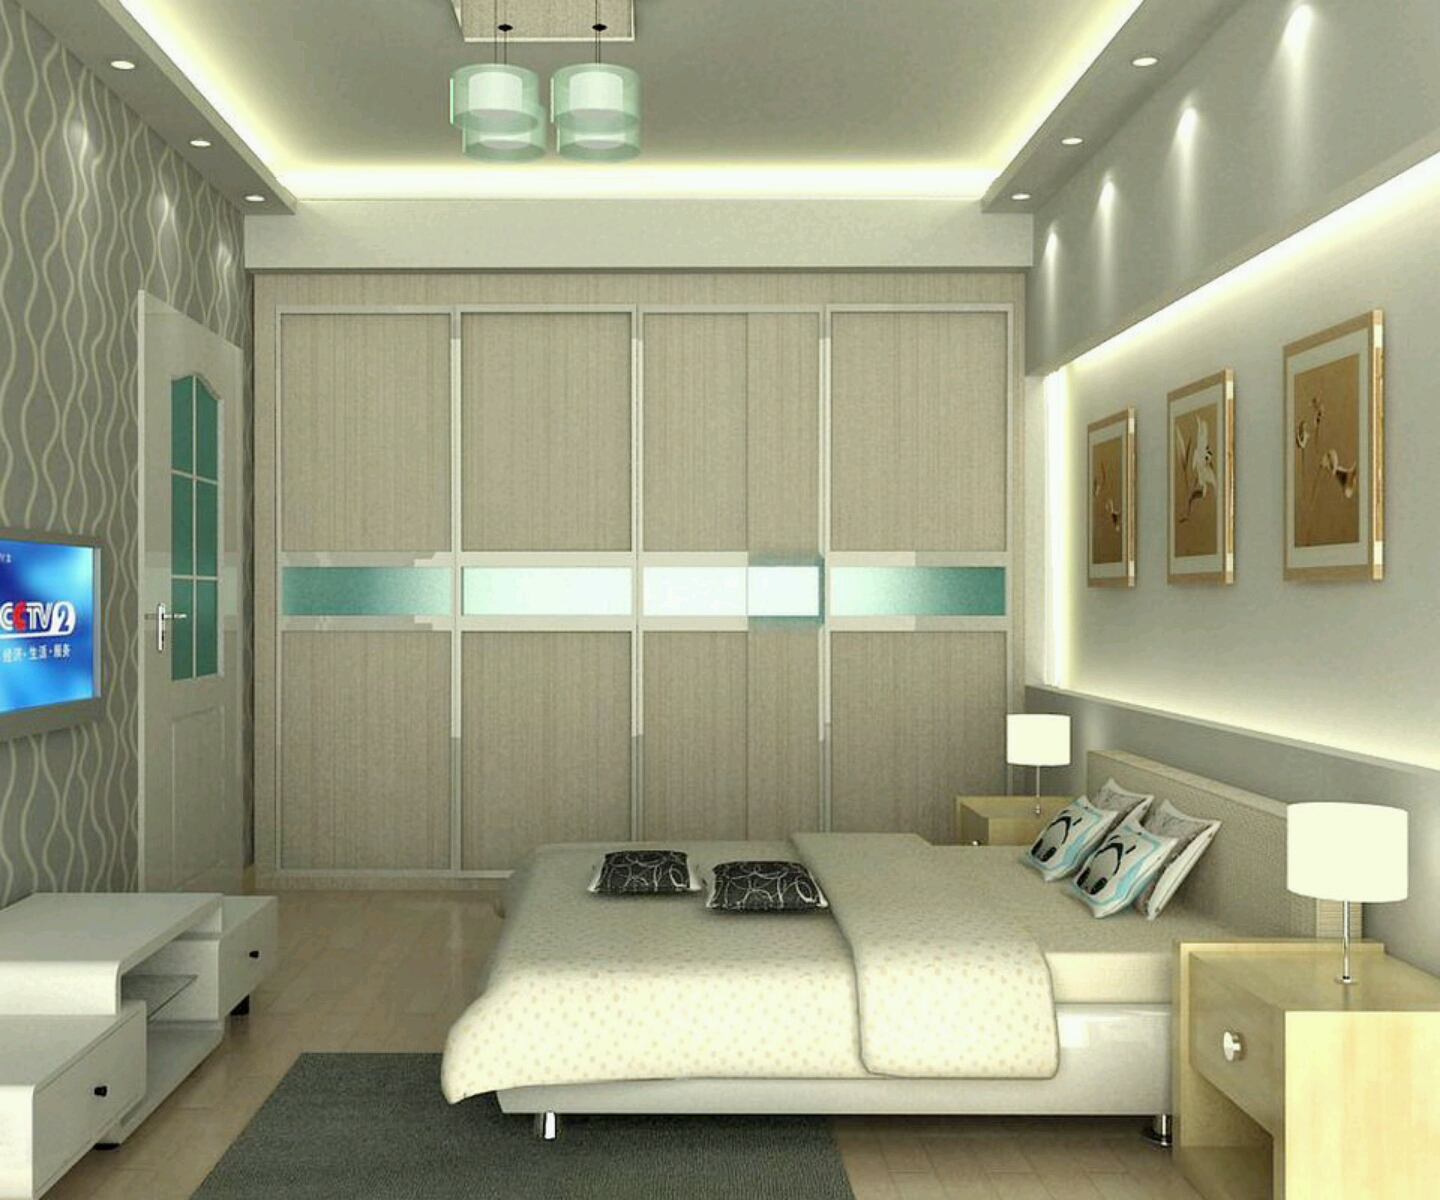 New home designs latest modern homes bedrooms designs for Latest bedroom decorating ideas